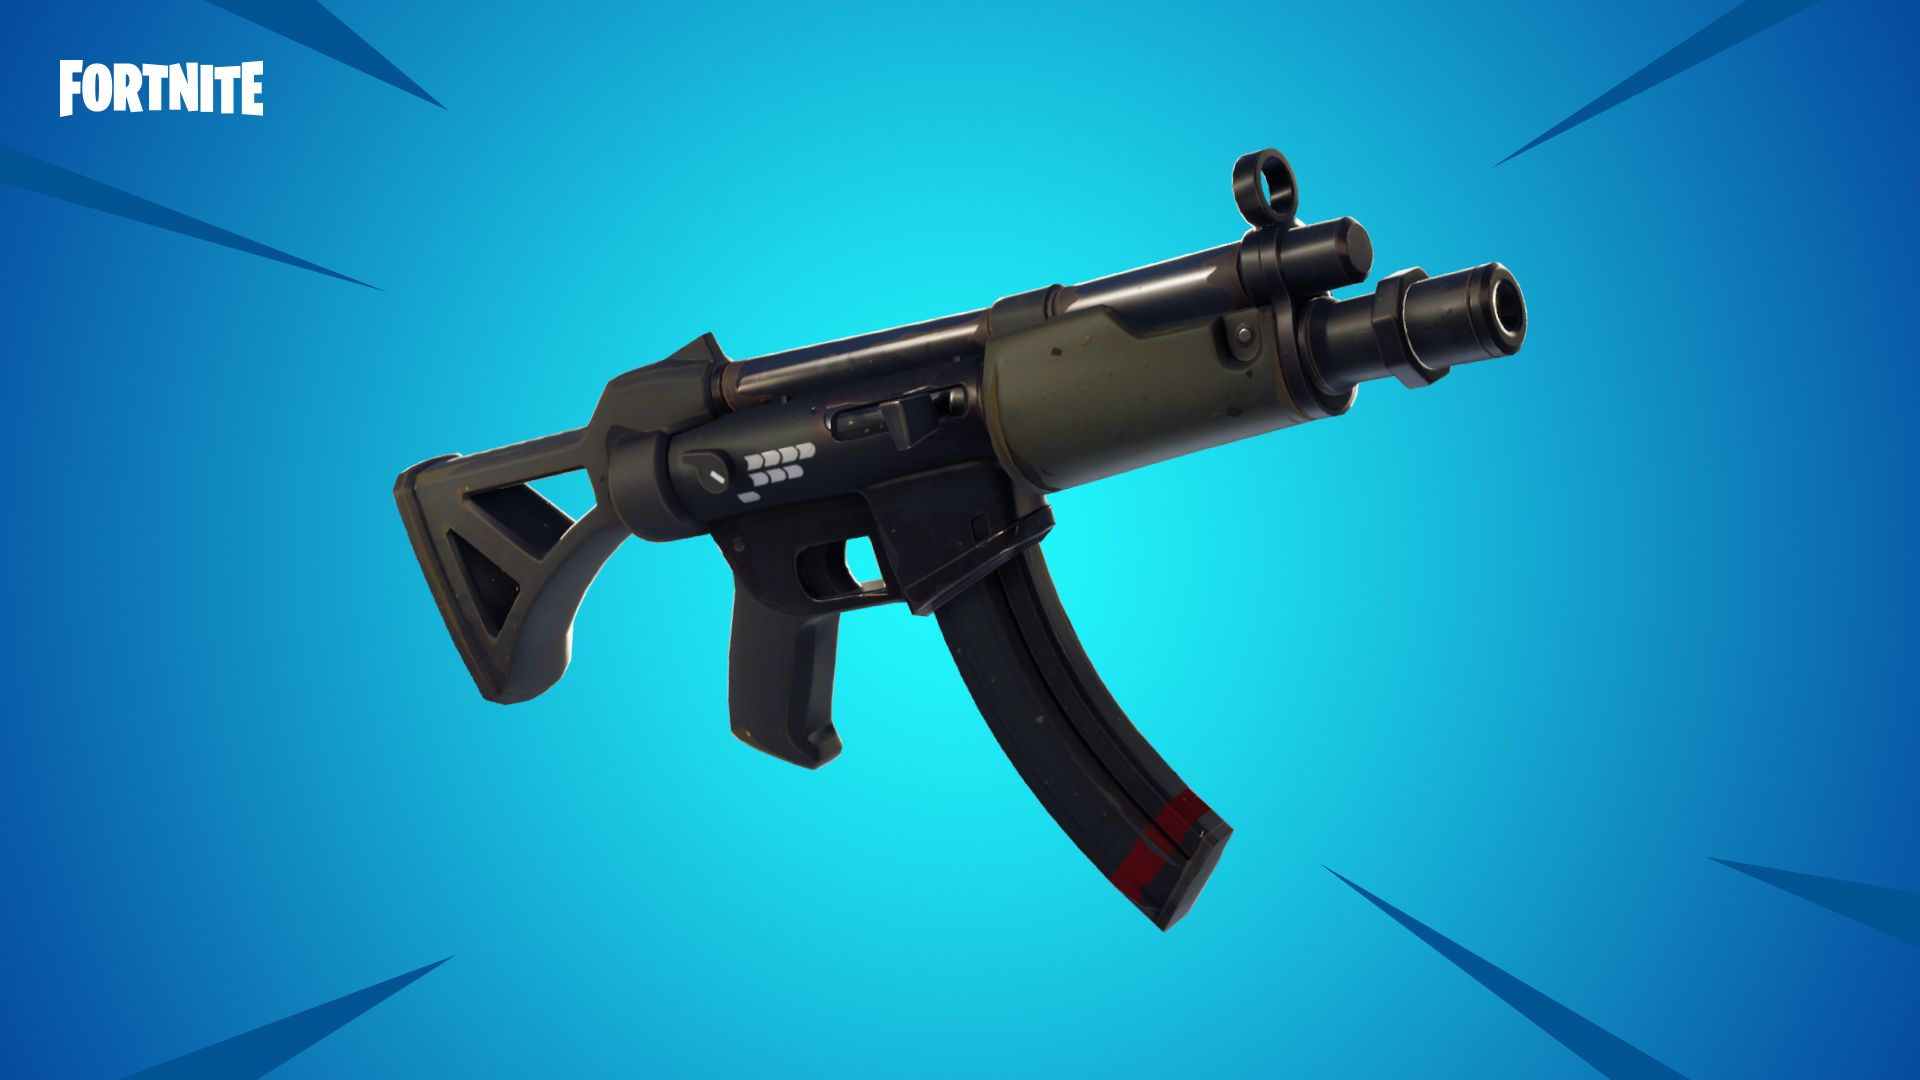 Fortnite V5 0 Content Update Notes – New SMG, Tactical SMG Vaulted